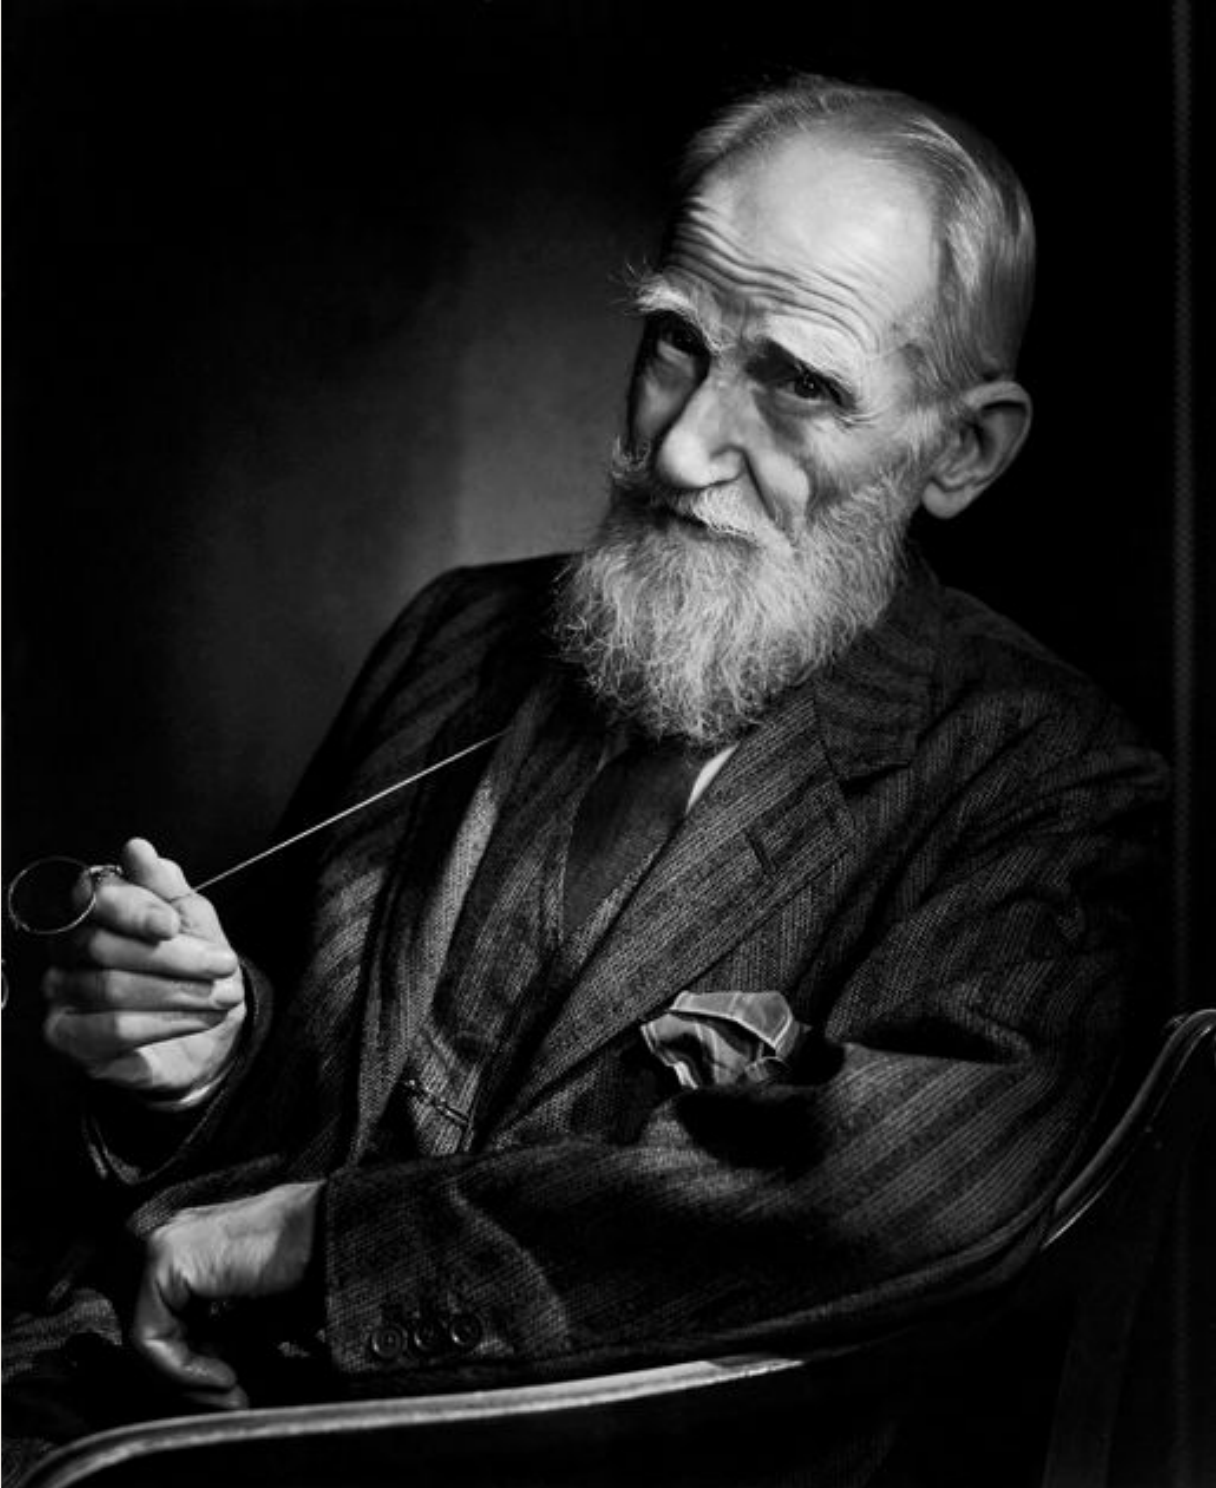 George Bernard Shaw, 1943. Photo by Yousuf Karsh.